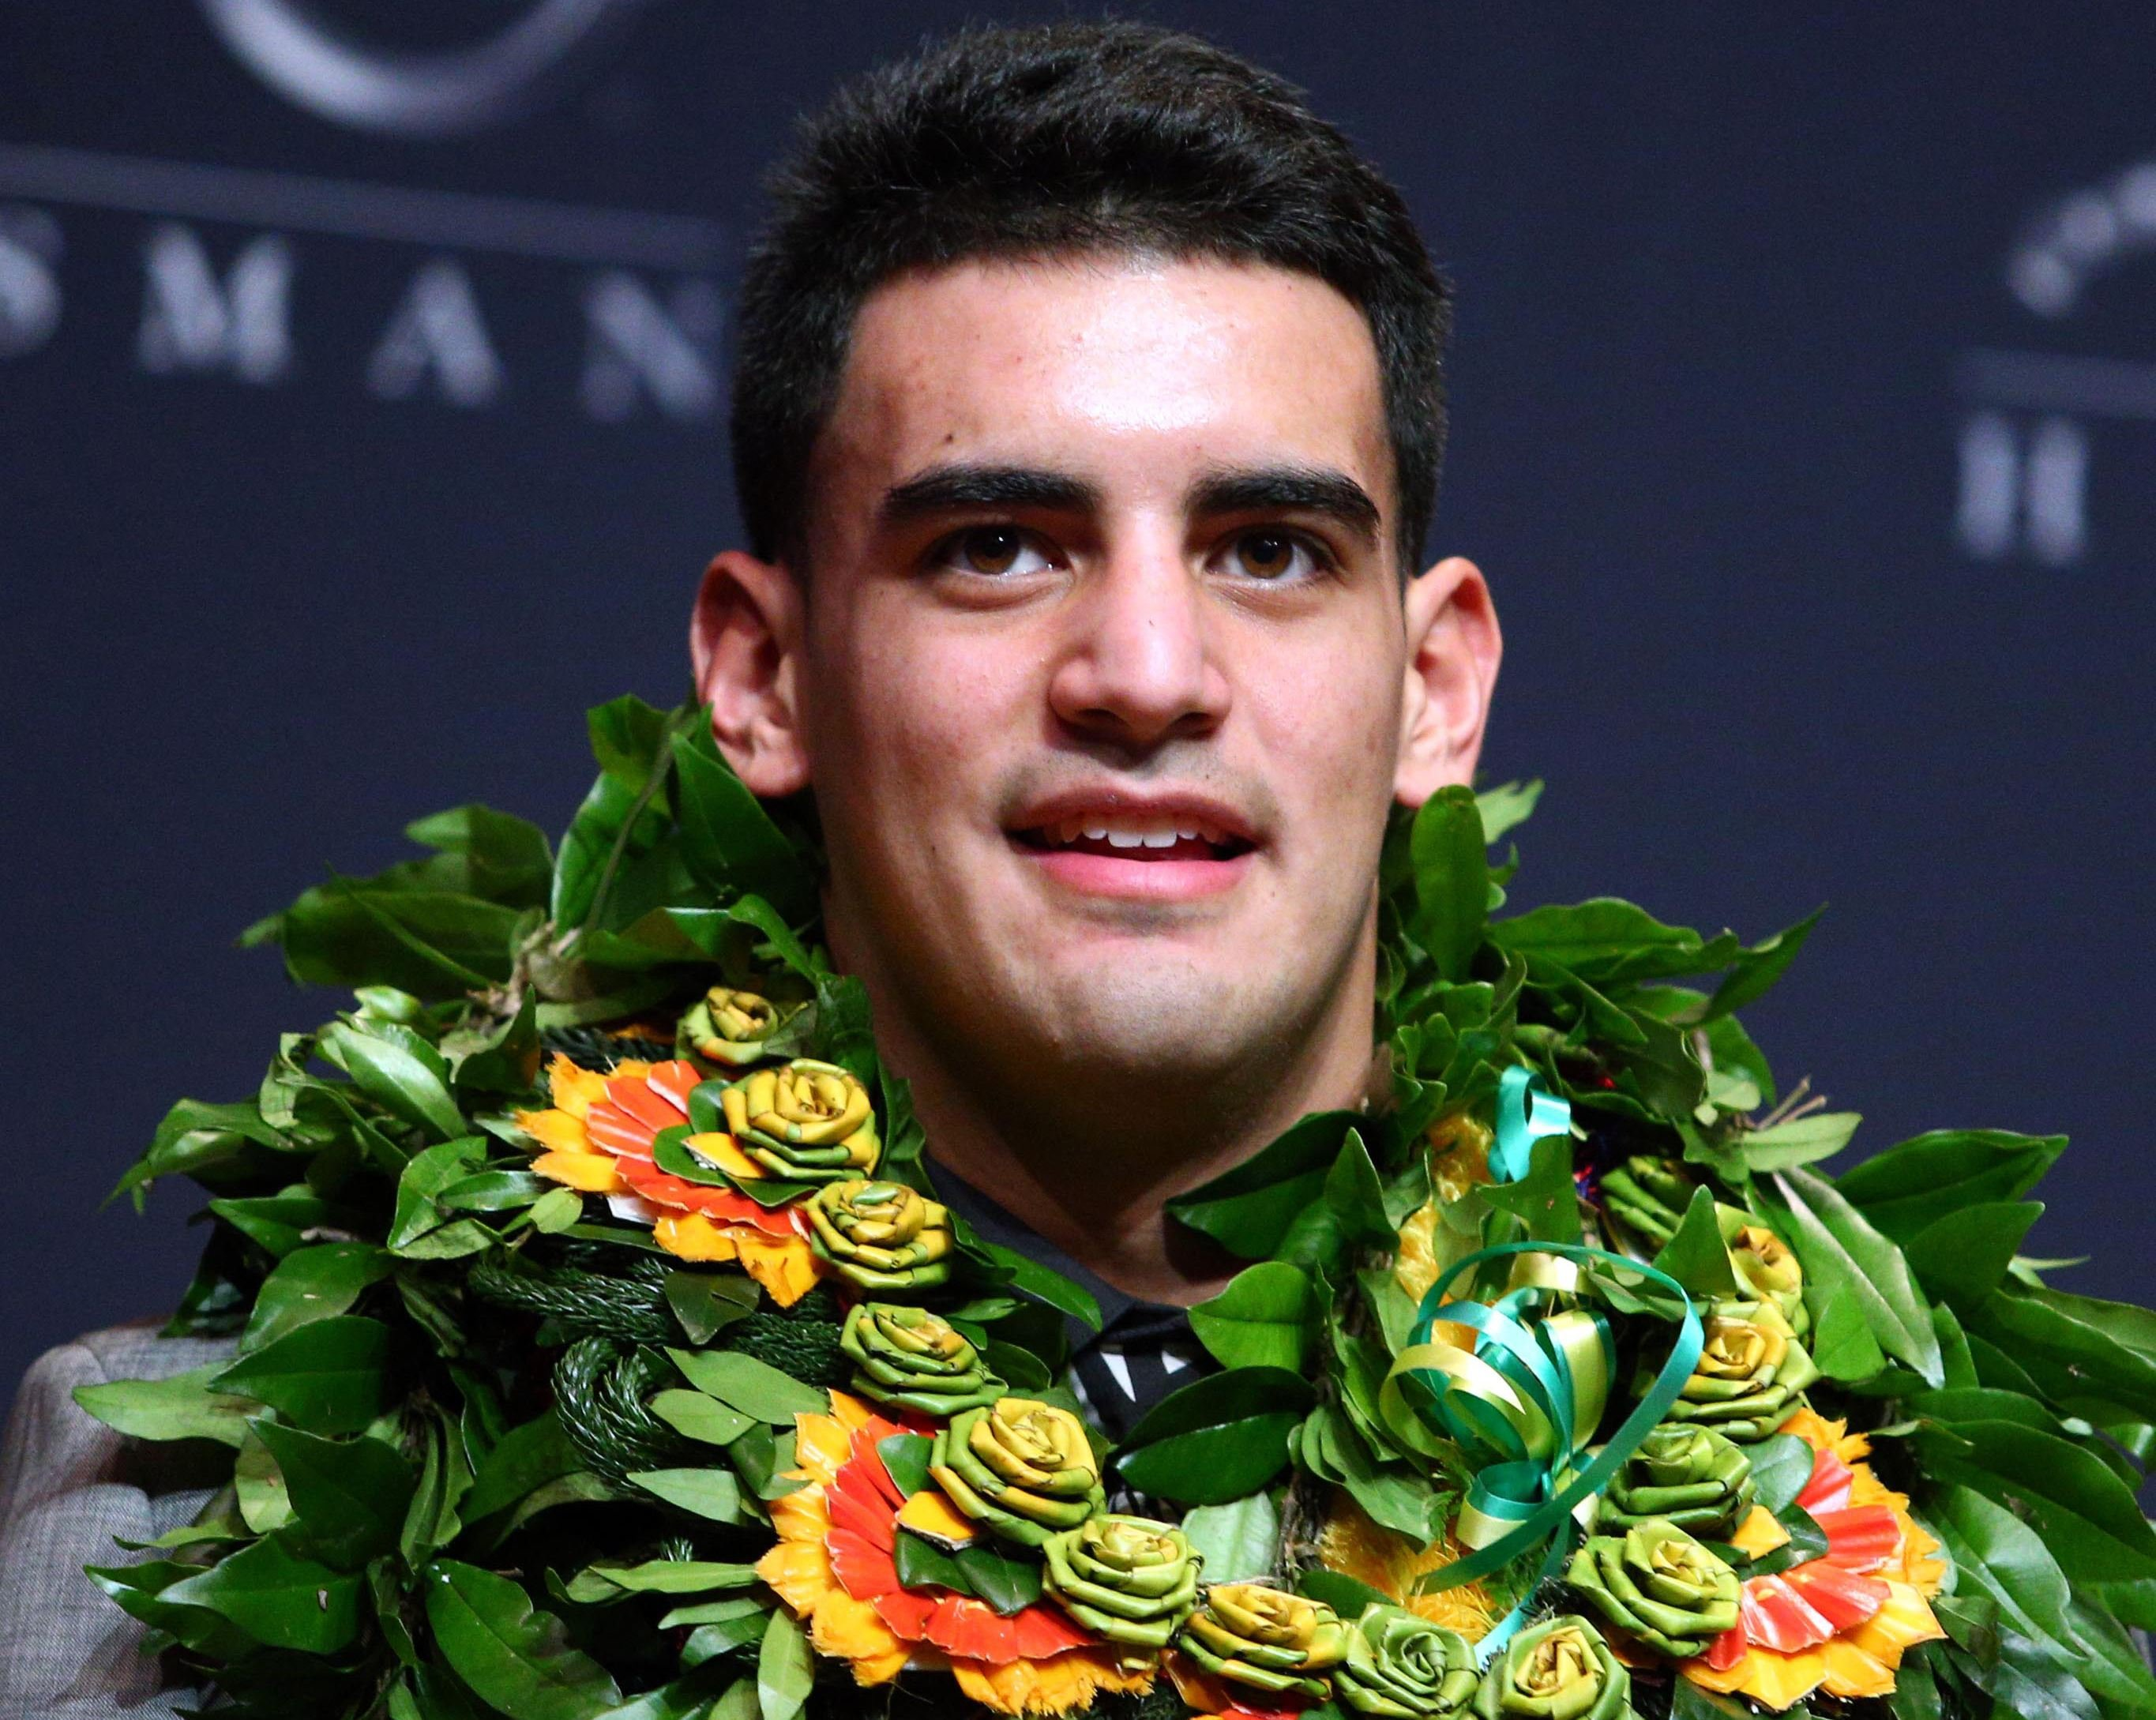 Oregon Ducks quarterback Marcus Mariota answers questions during a press conference after winning the Heisman Trophy in New York on Dec. 13, 2014.